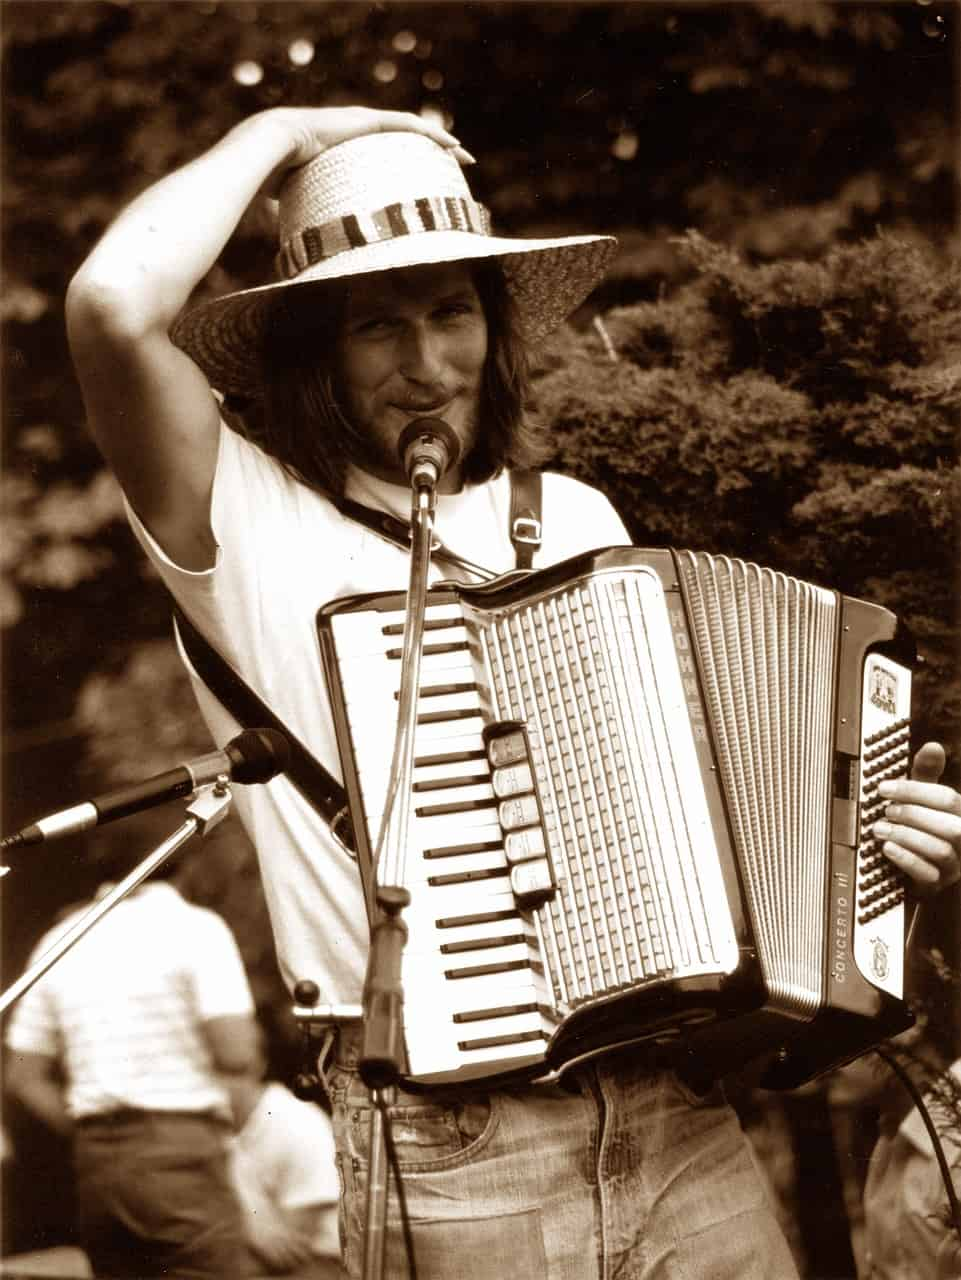 Un accordéoniste